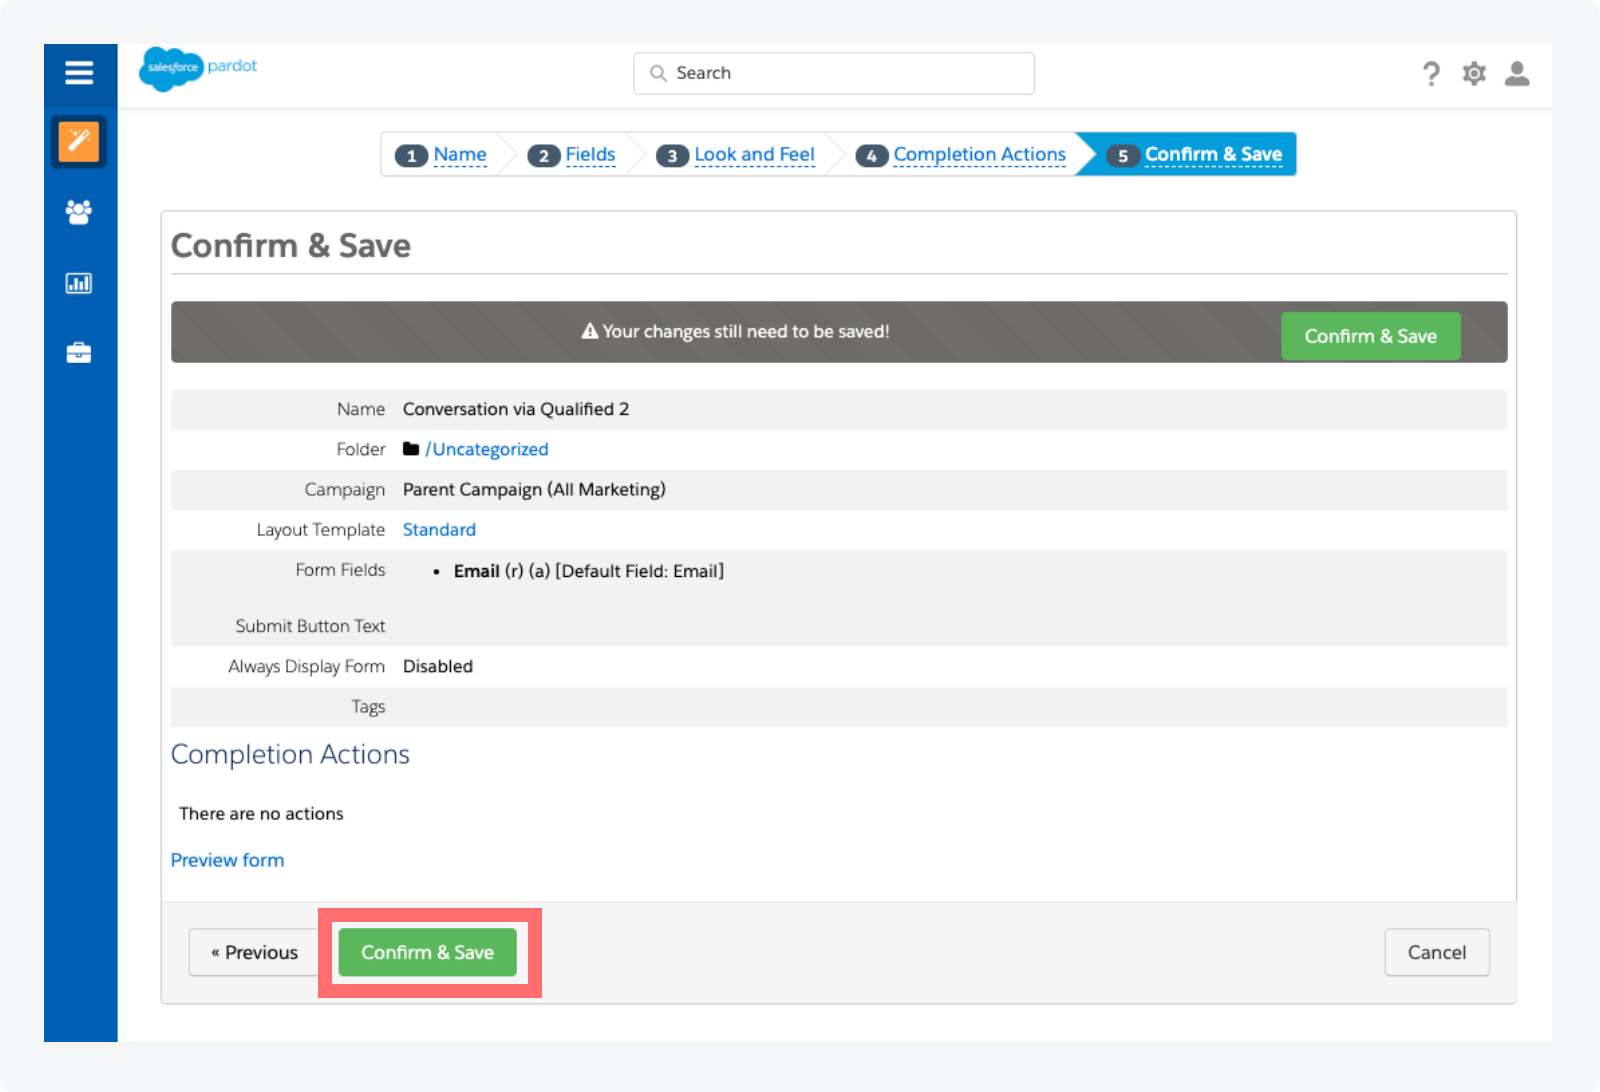 Creating a Pardot Form to Track Qualified Conversations as Activities Step 5